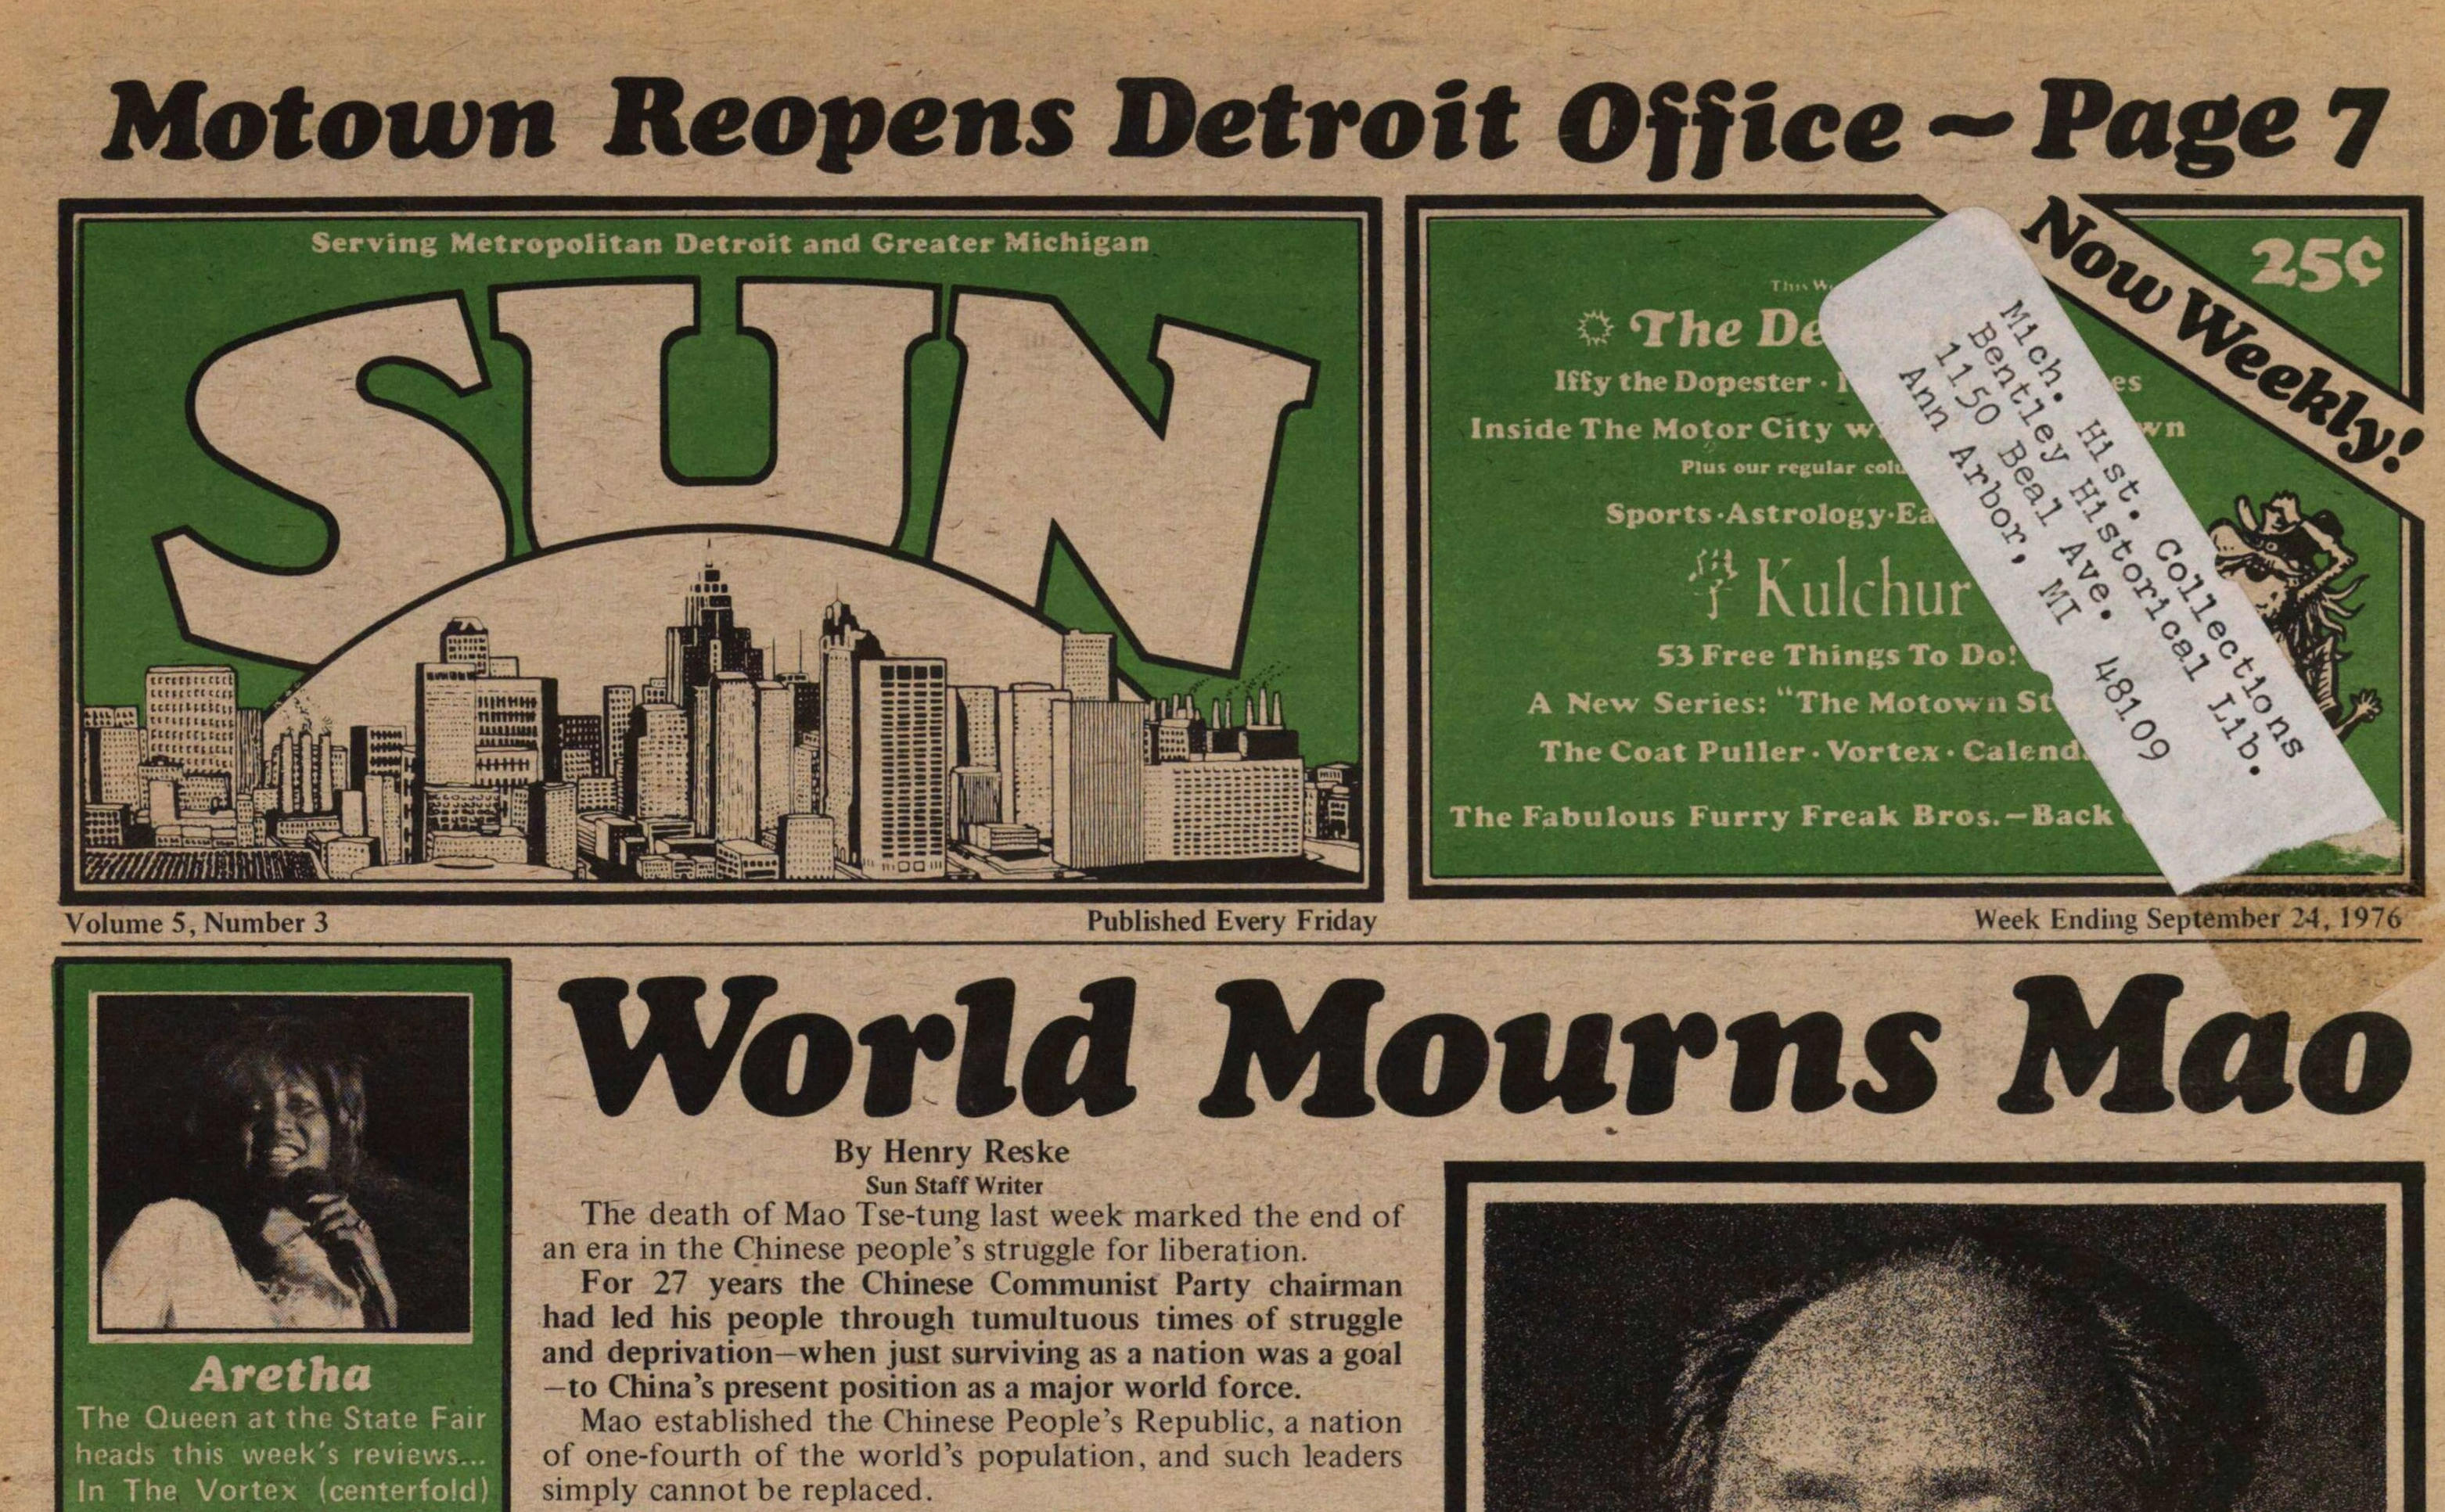 Motown Reopens Detroit Office- Page 7 image